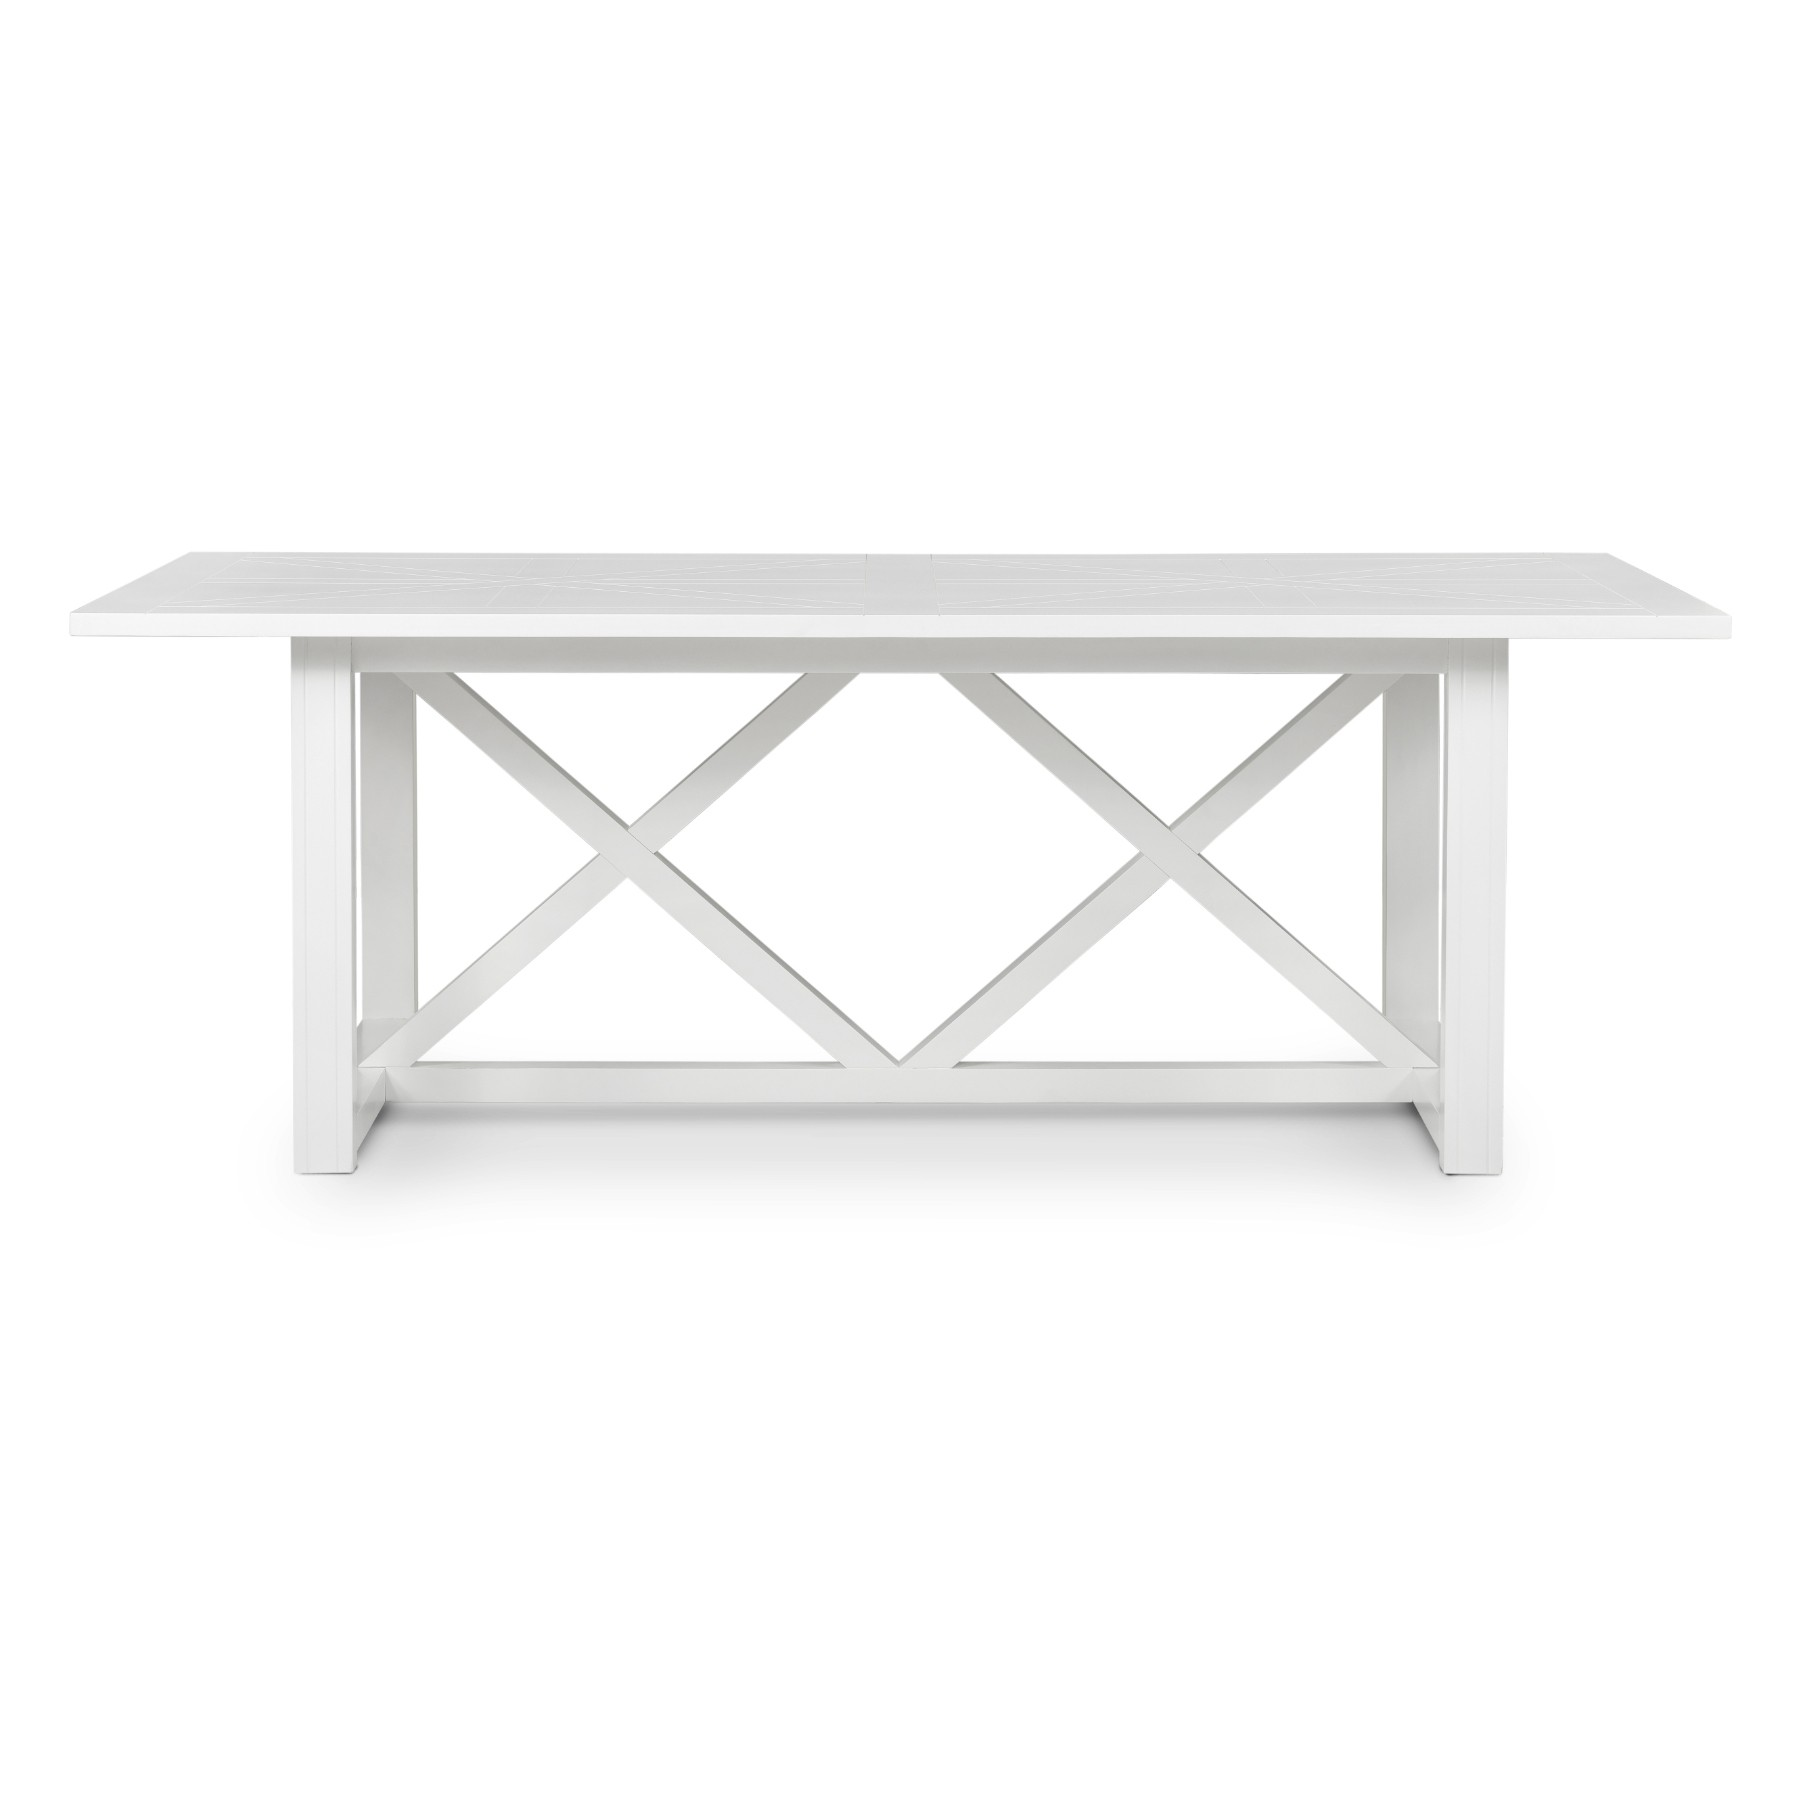 Sorrento Wooden Dining Table, 220cm, White